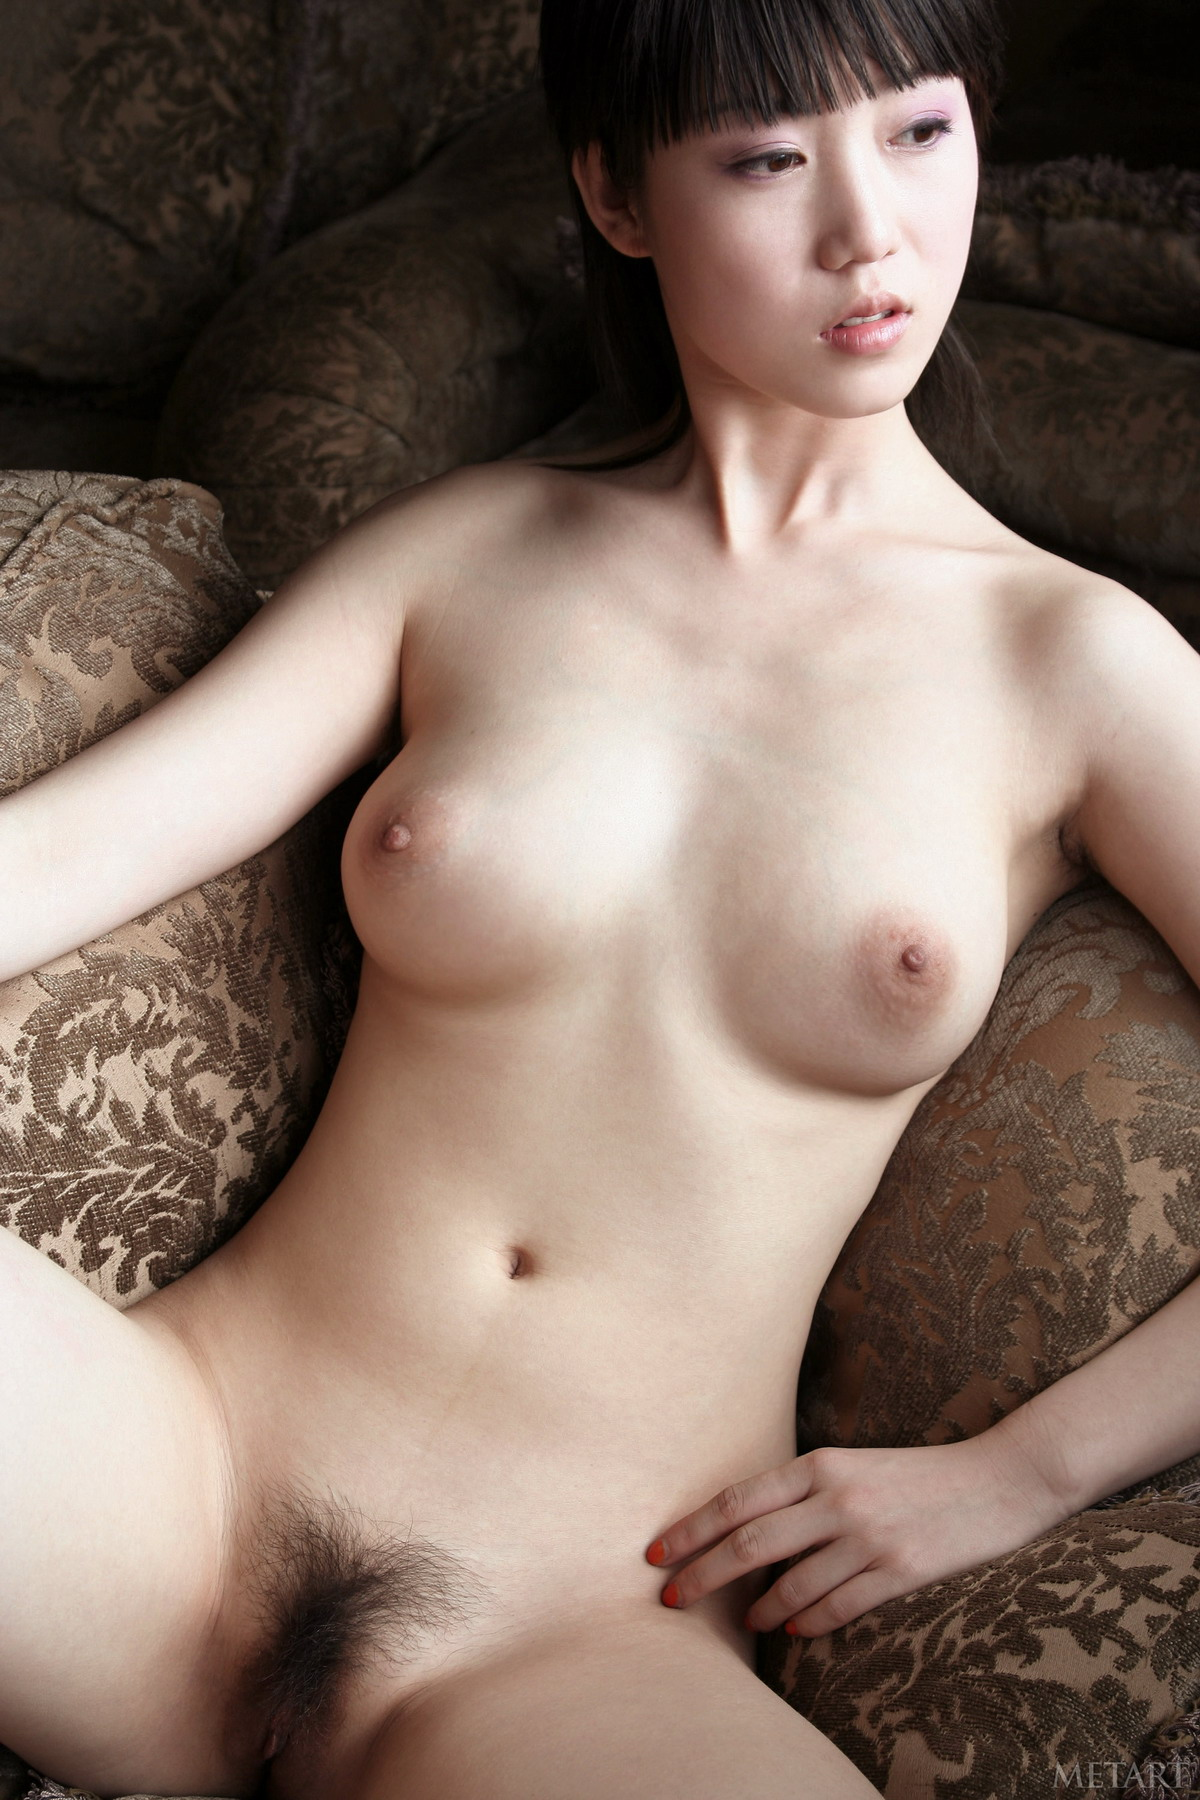 Pictures of chinese women, naked asia women